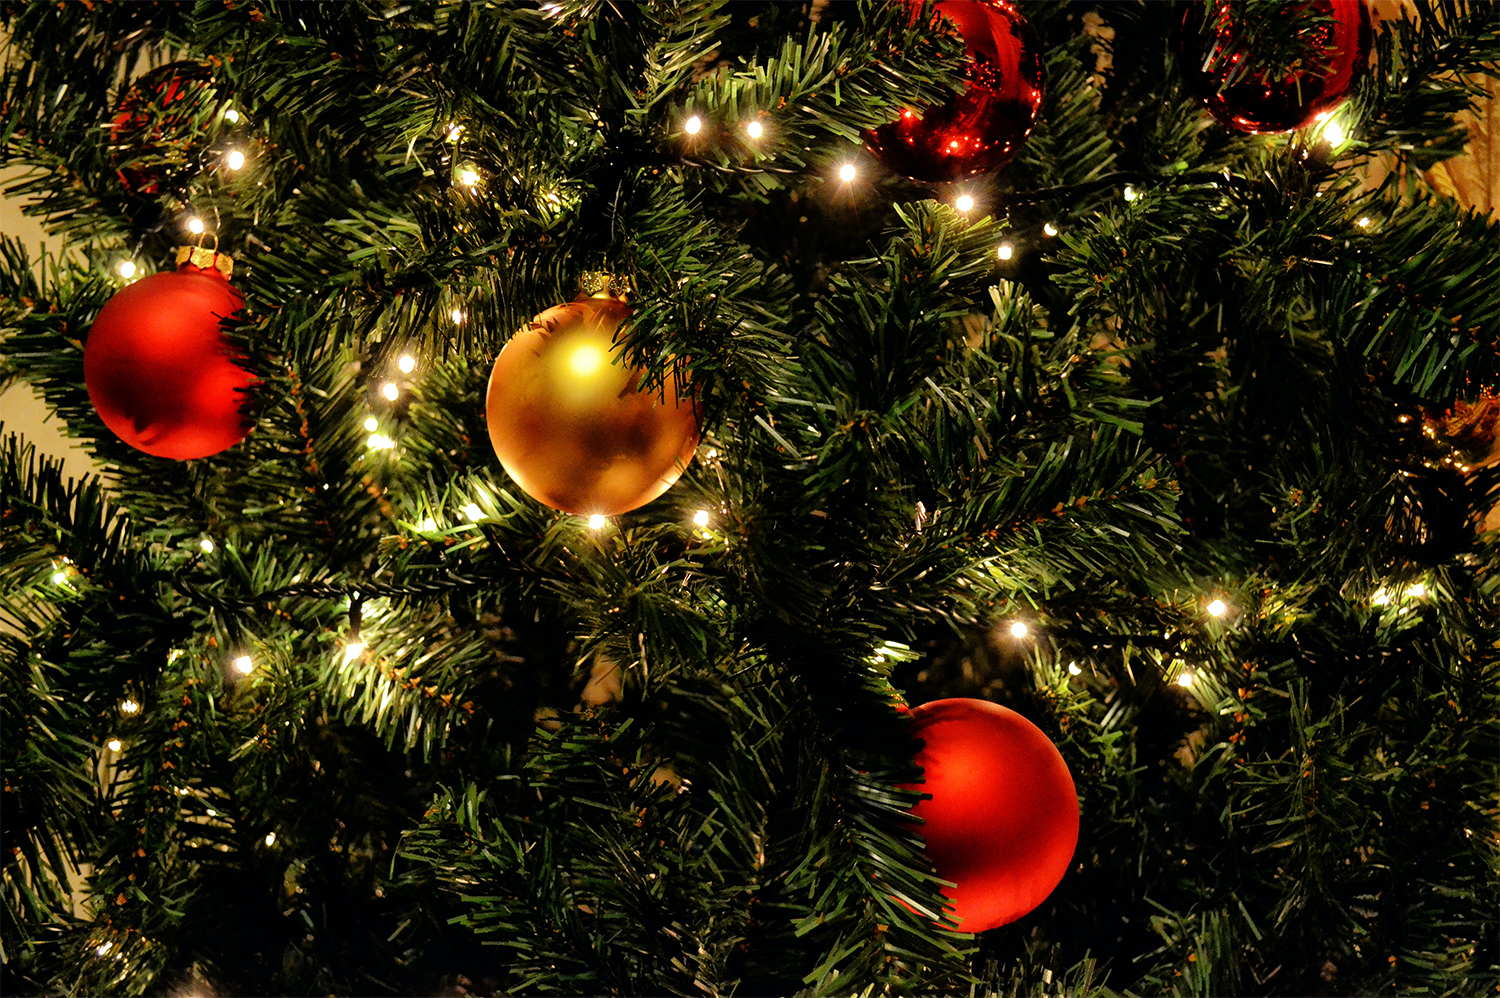 Close up of a Christmas tree with red and gold ornaments, taking into considerations tips about avoiding electrical hazards this holiday season.